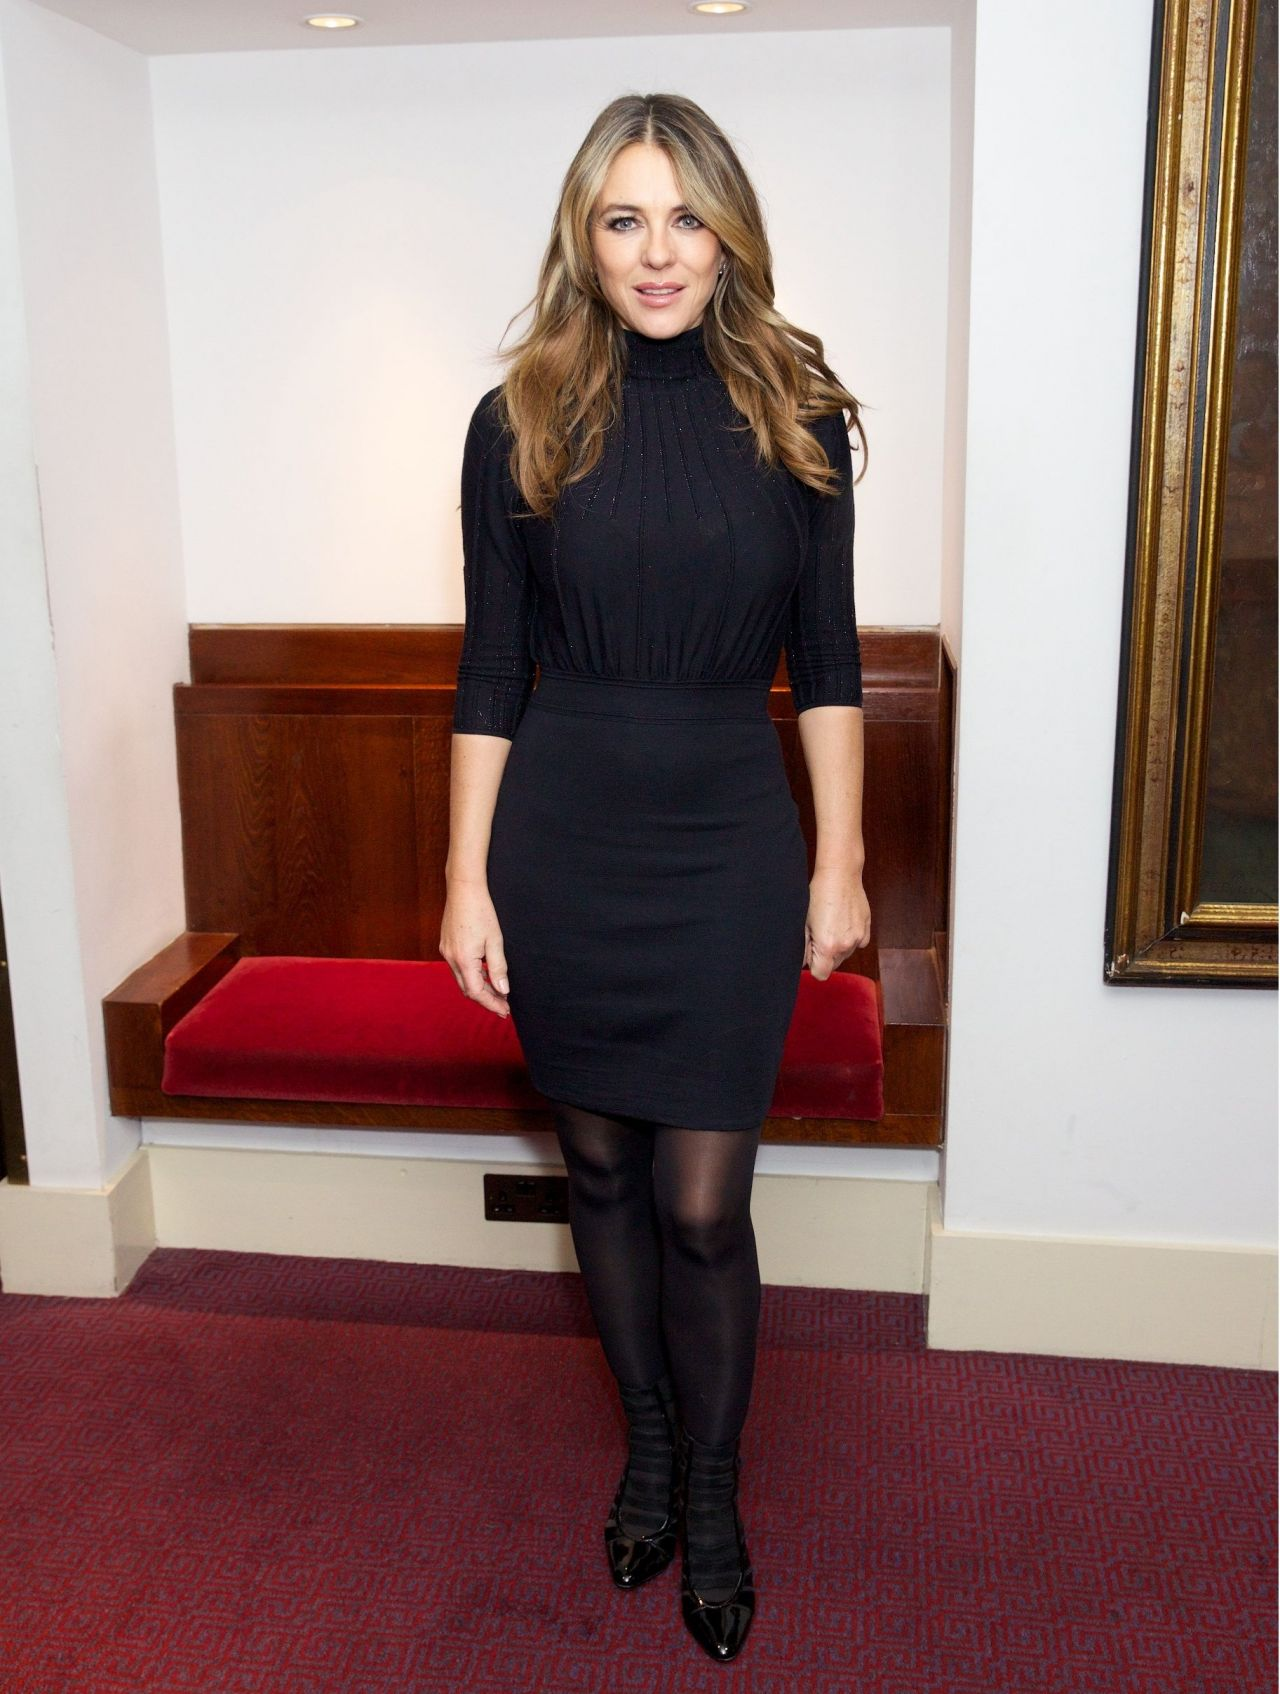 http://celebmafia.com/wp-content/uploads/2018/01/elizabeth-hurley-song-of-the-earth-ballet-opening-night-in-london-1.jpg